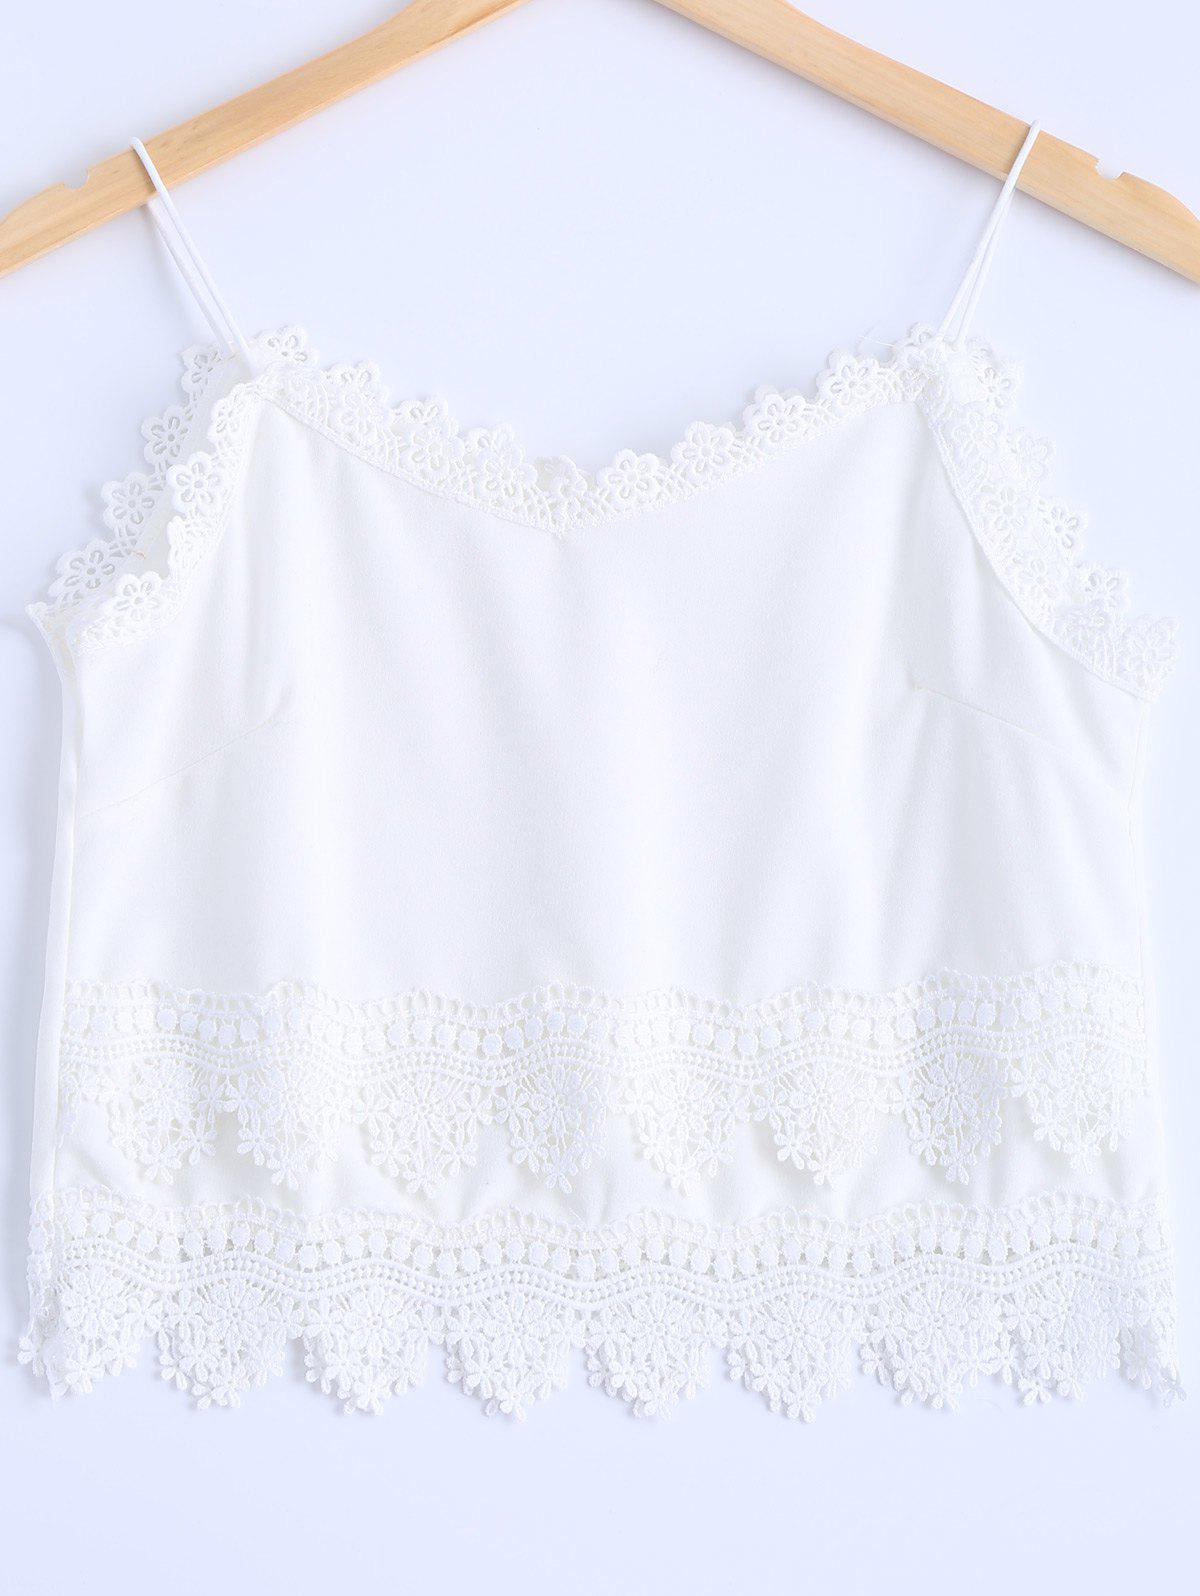 Stylish Women's Spaghetti Strap Lace Trim Top - WHITE ONE SIZE(FIT SIZE XS TO M)